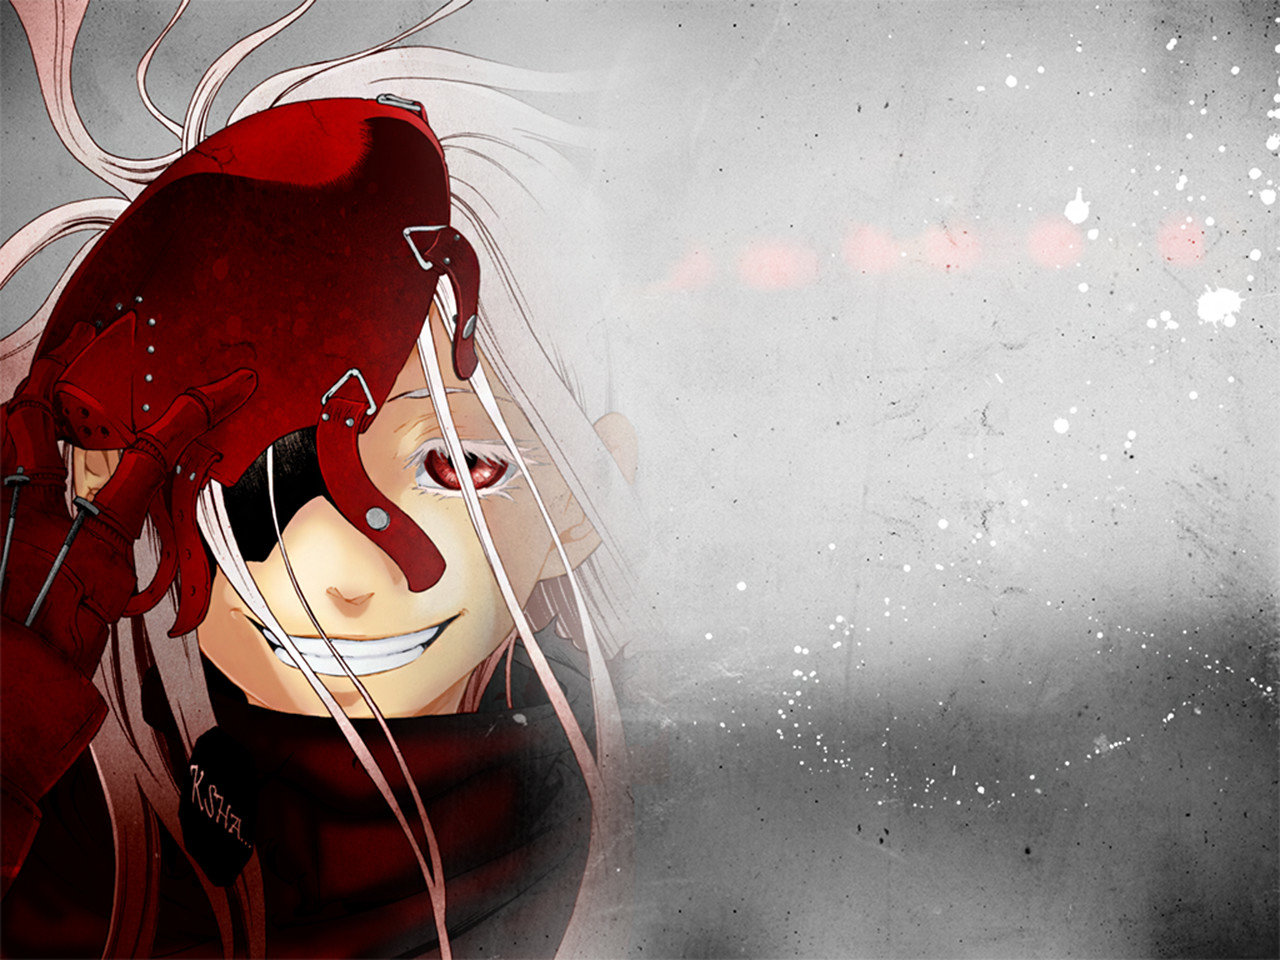 Awesome Shiro (Deadman Wonderland) free background ID:192058 for hd 1280x960 desktop